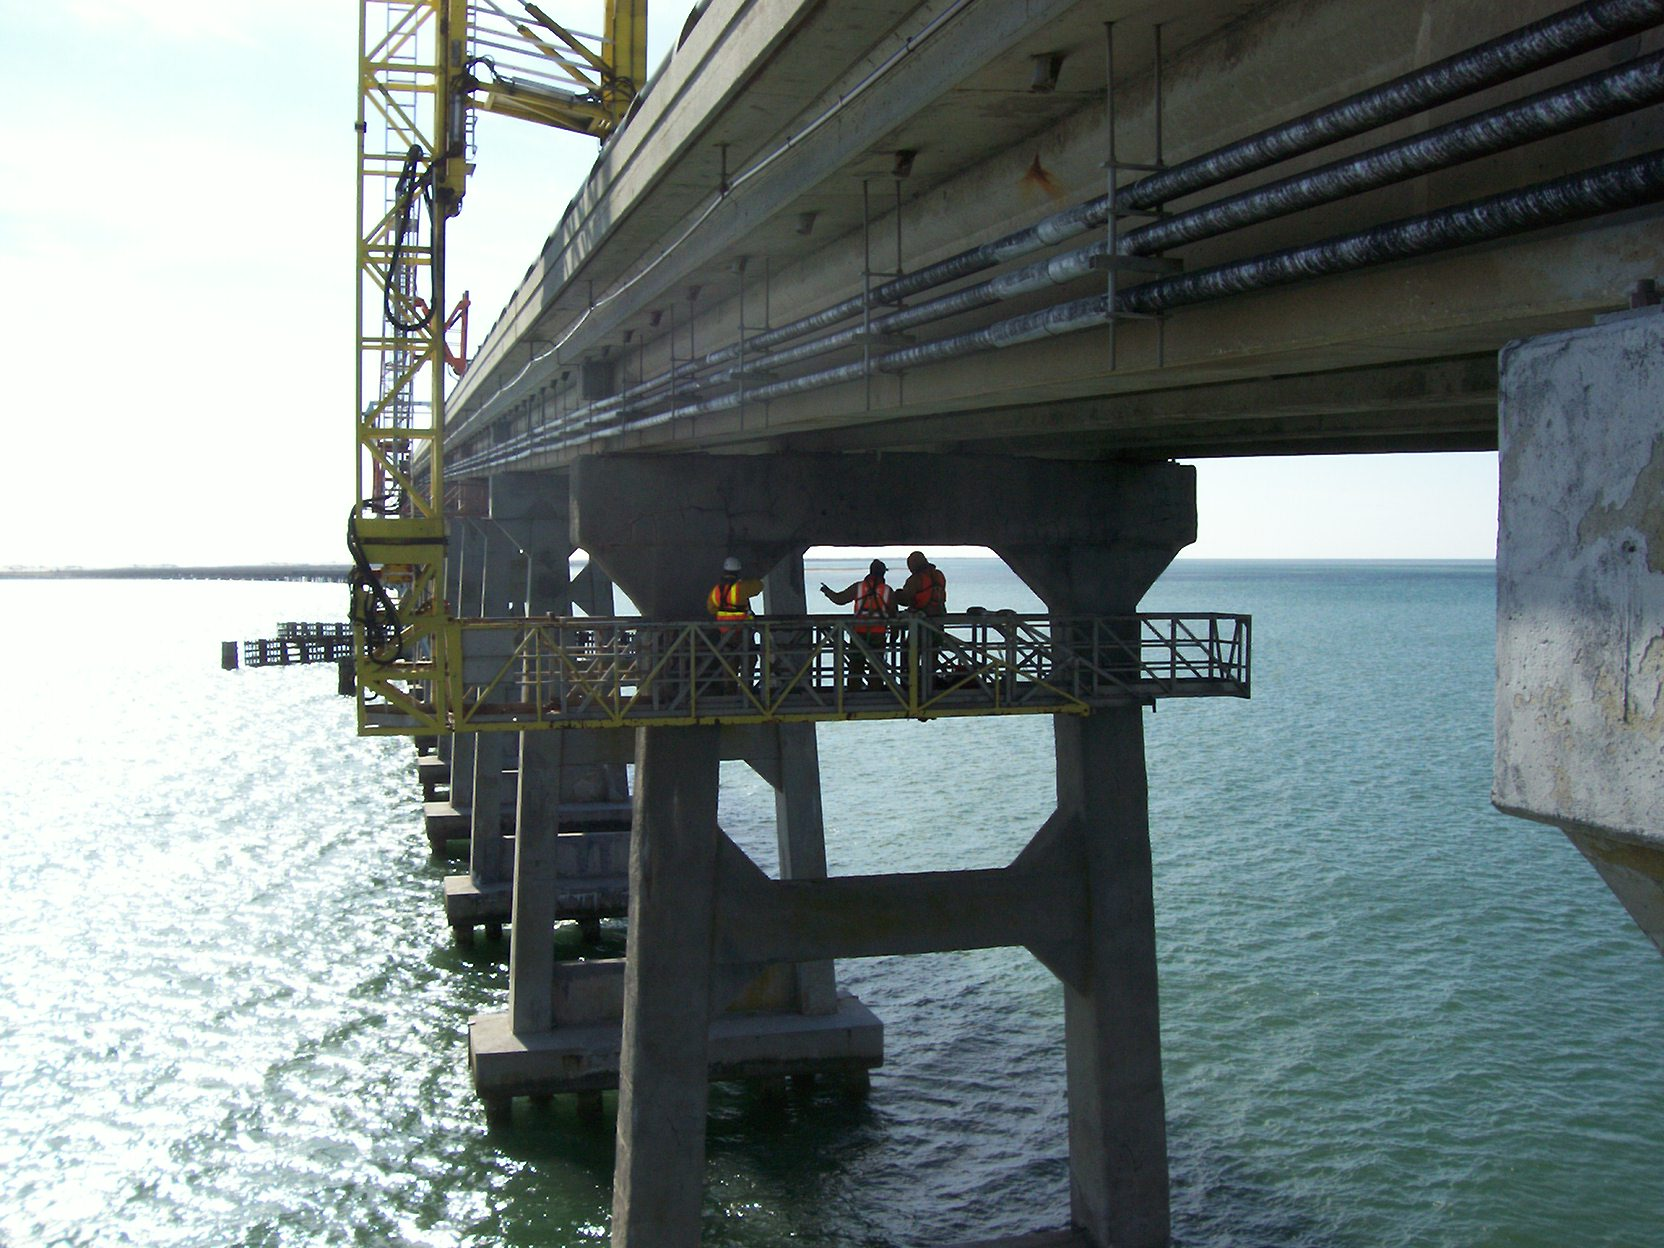 A&O inspected the 1963 Bonner Bridge in 2006 and designed repairs to stabilize it until a new bridge could be constructed.